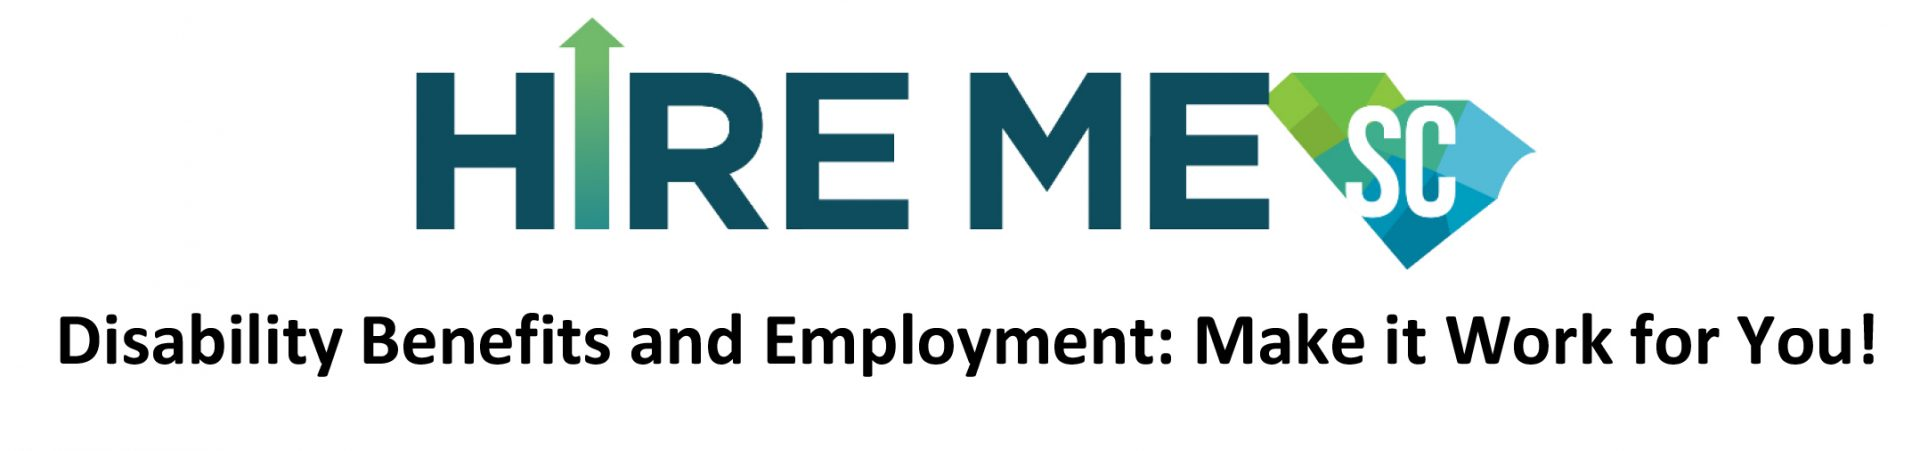 Disability Benefits and Employment: Making it Work for You